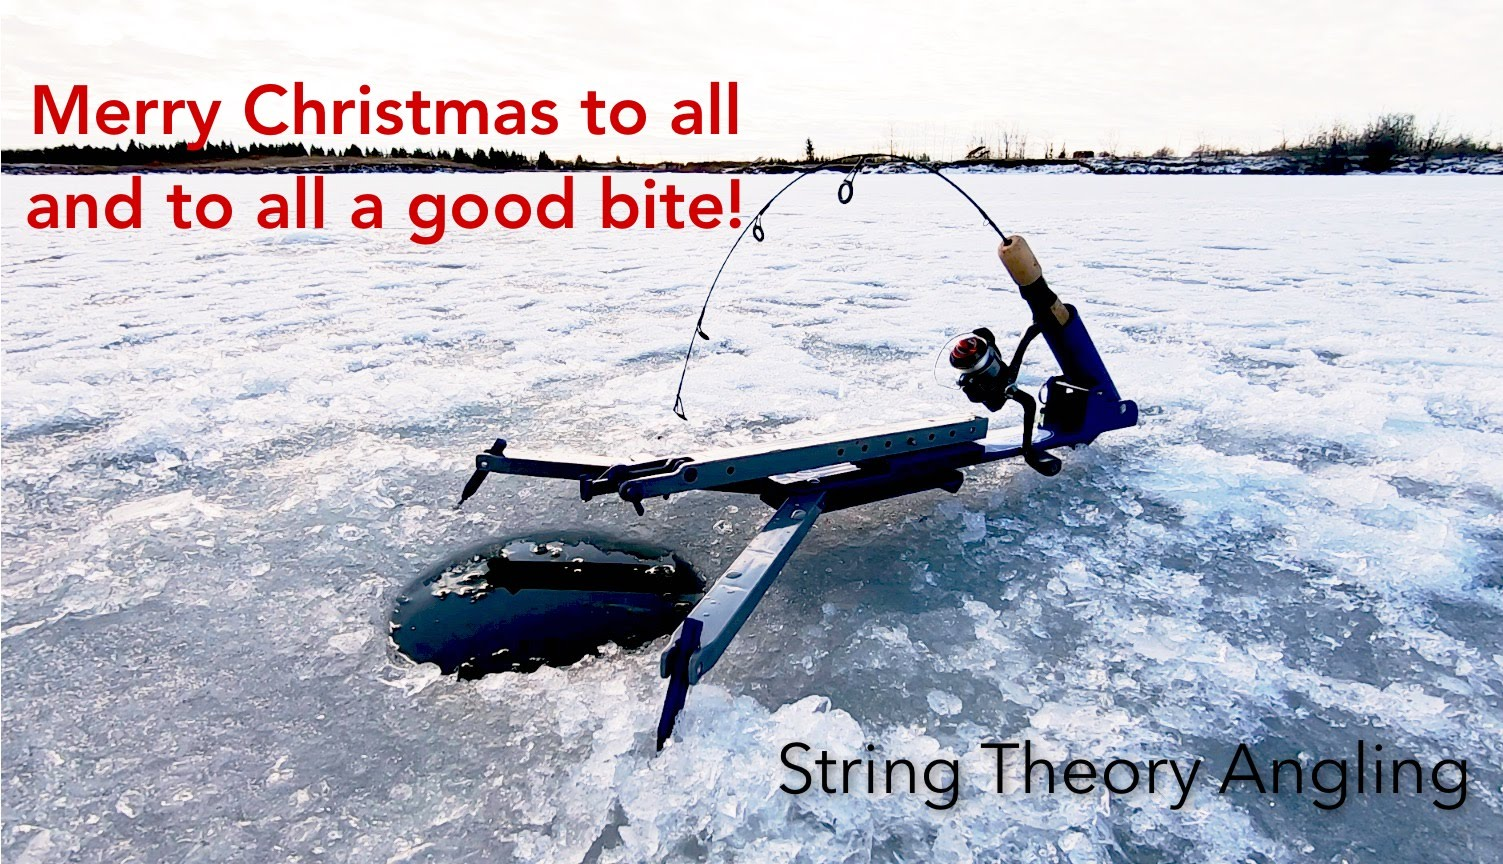 merry christmas string theory angling